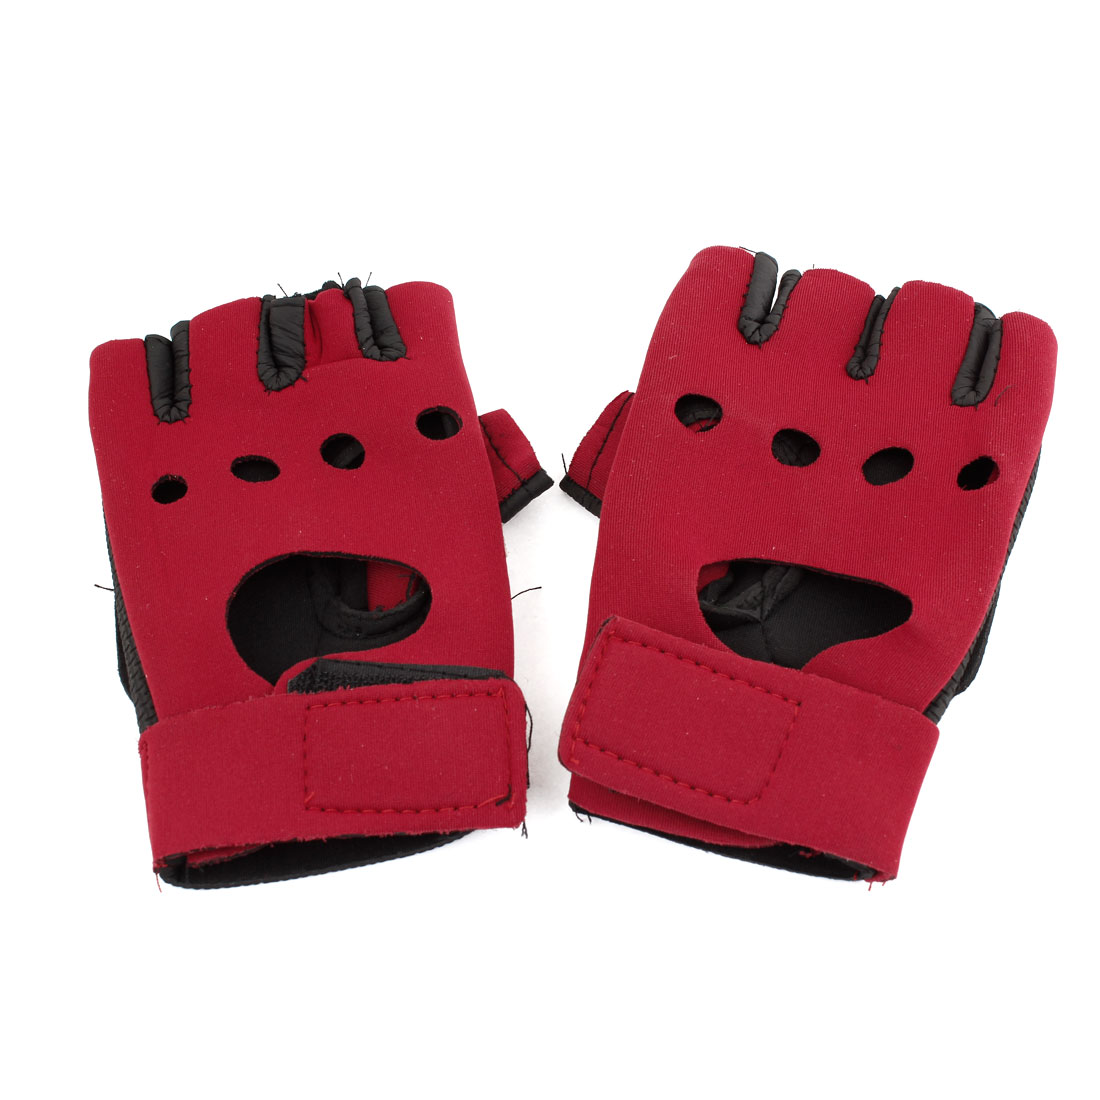 Cycling Pair Red Black Faux Leather Adjustable Band Sports Gloves Supports